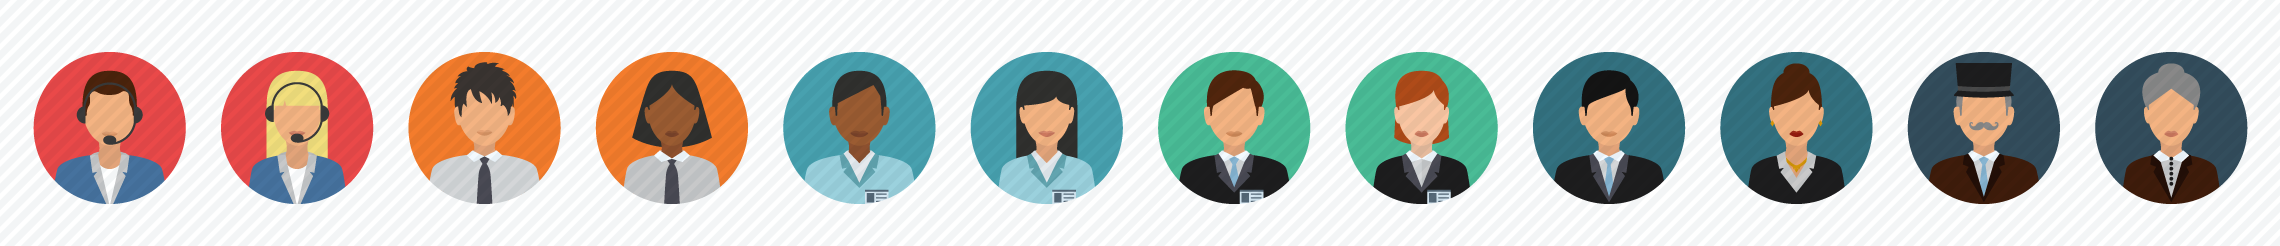 People_Business flat icons